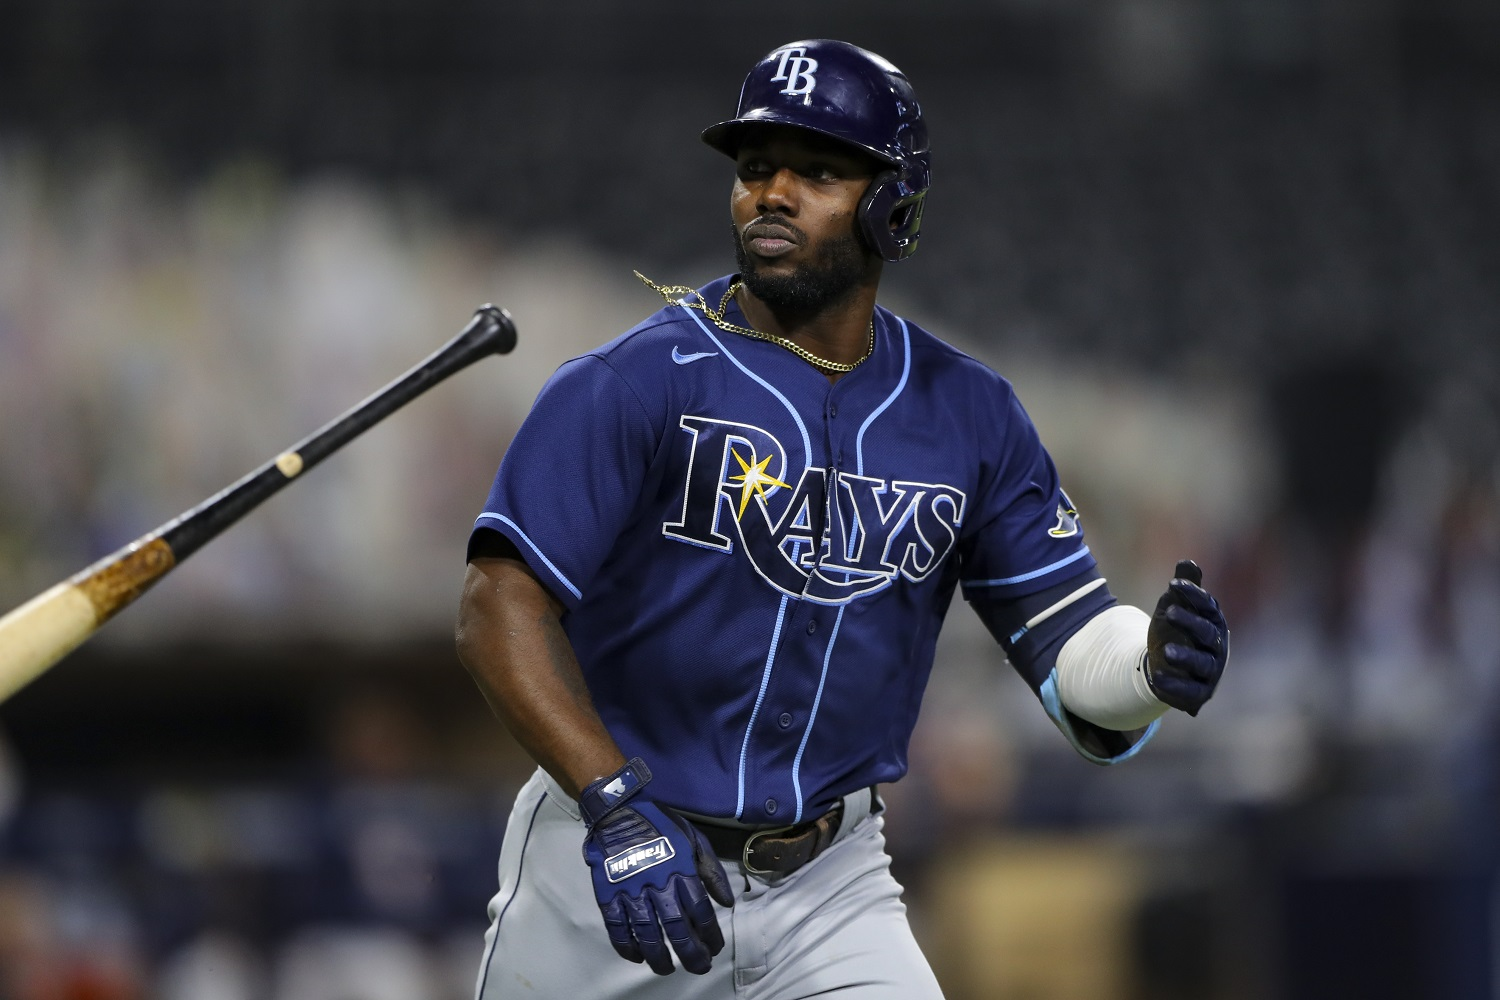 randy arozarena once made 4 a month playing baseball and is now making history for the tampa bay rays https www sportscasting com randy arozarena once made 4 a month playing baseball and is now making history for the tampa bay rays